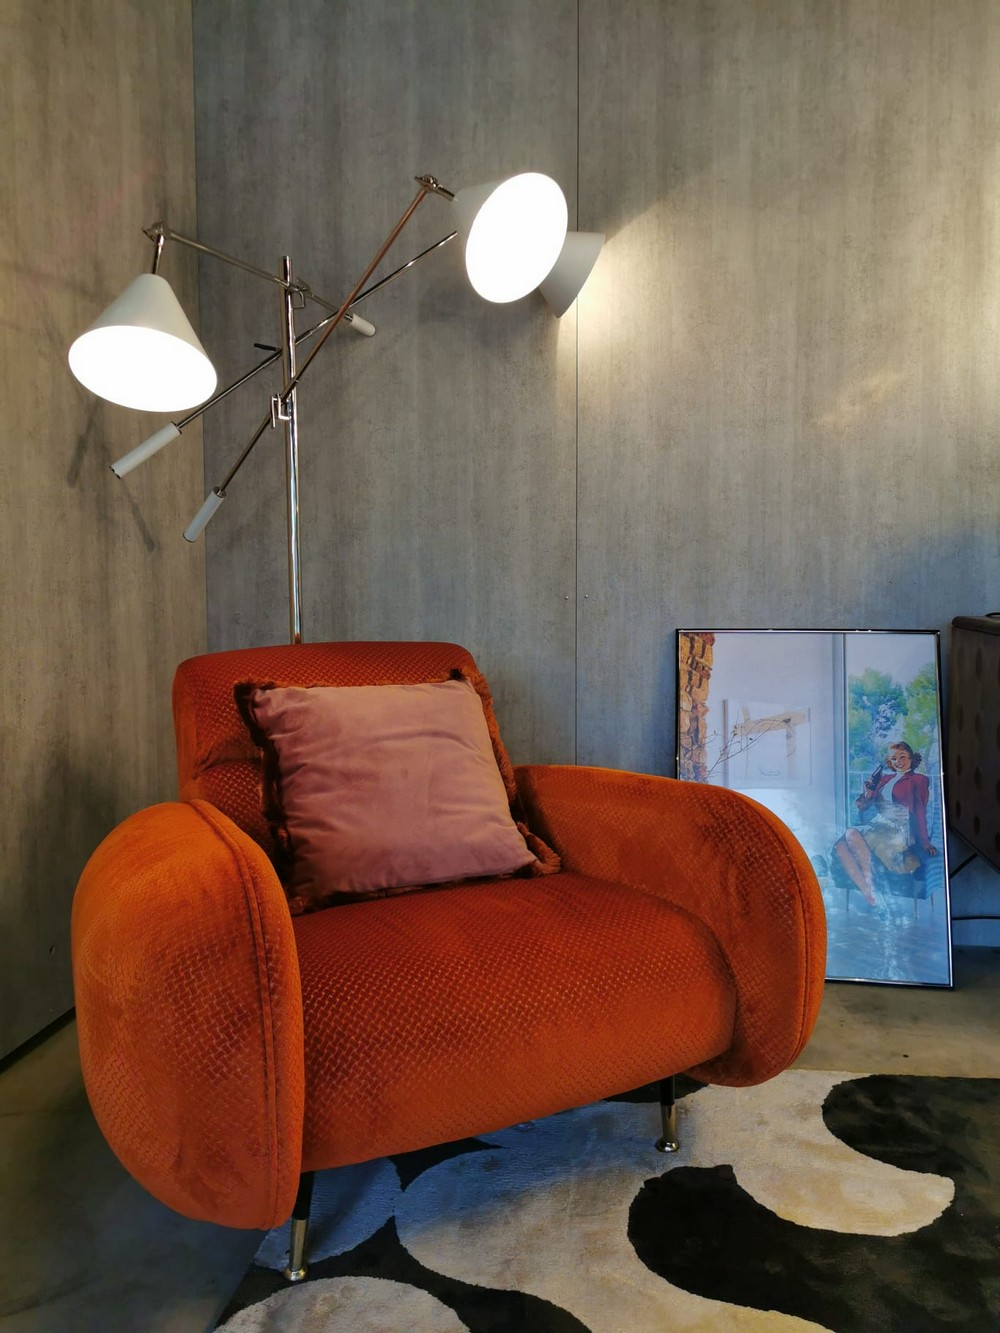 Inside Tour On The Trendiest Mid-Century Modern House In Porto mid-century modern house Inside Tour On The Trendiest Mid-Century Modern House In Porto WhatsApp Image 2019 06 26 at 00